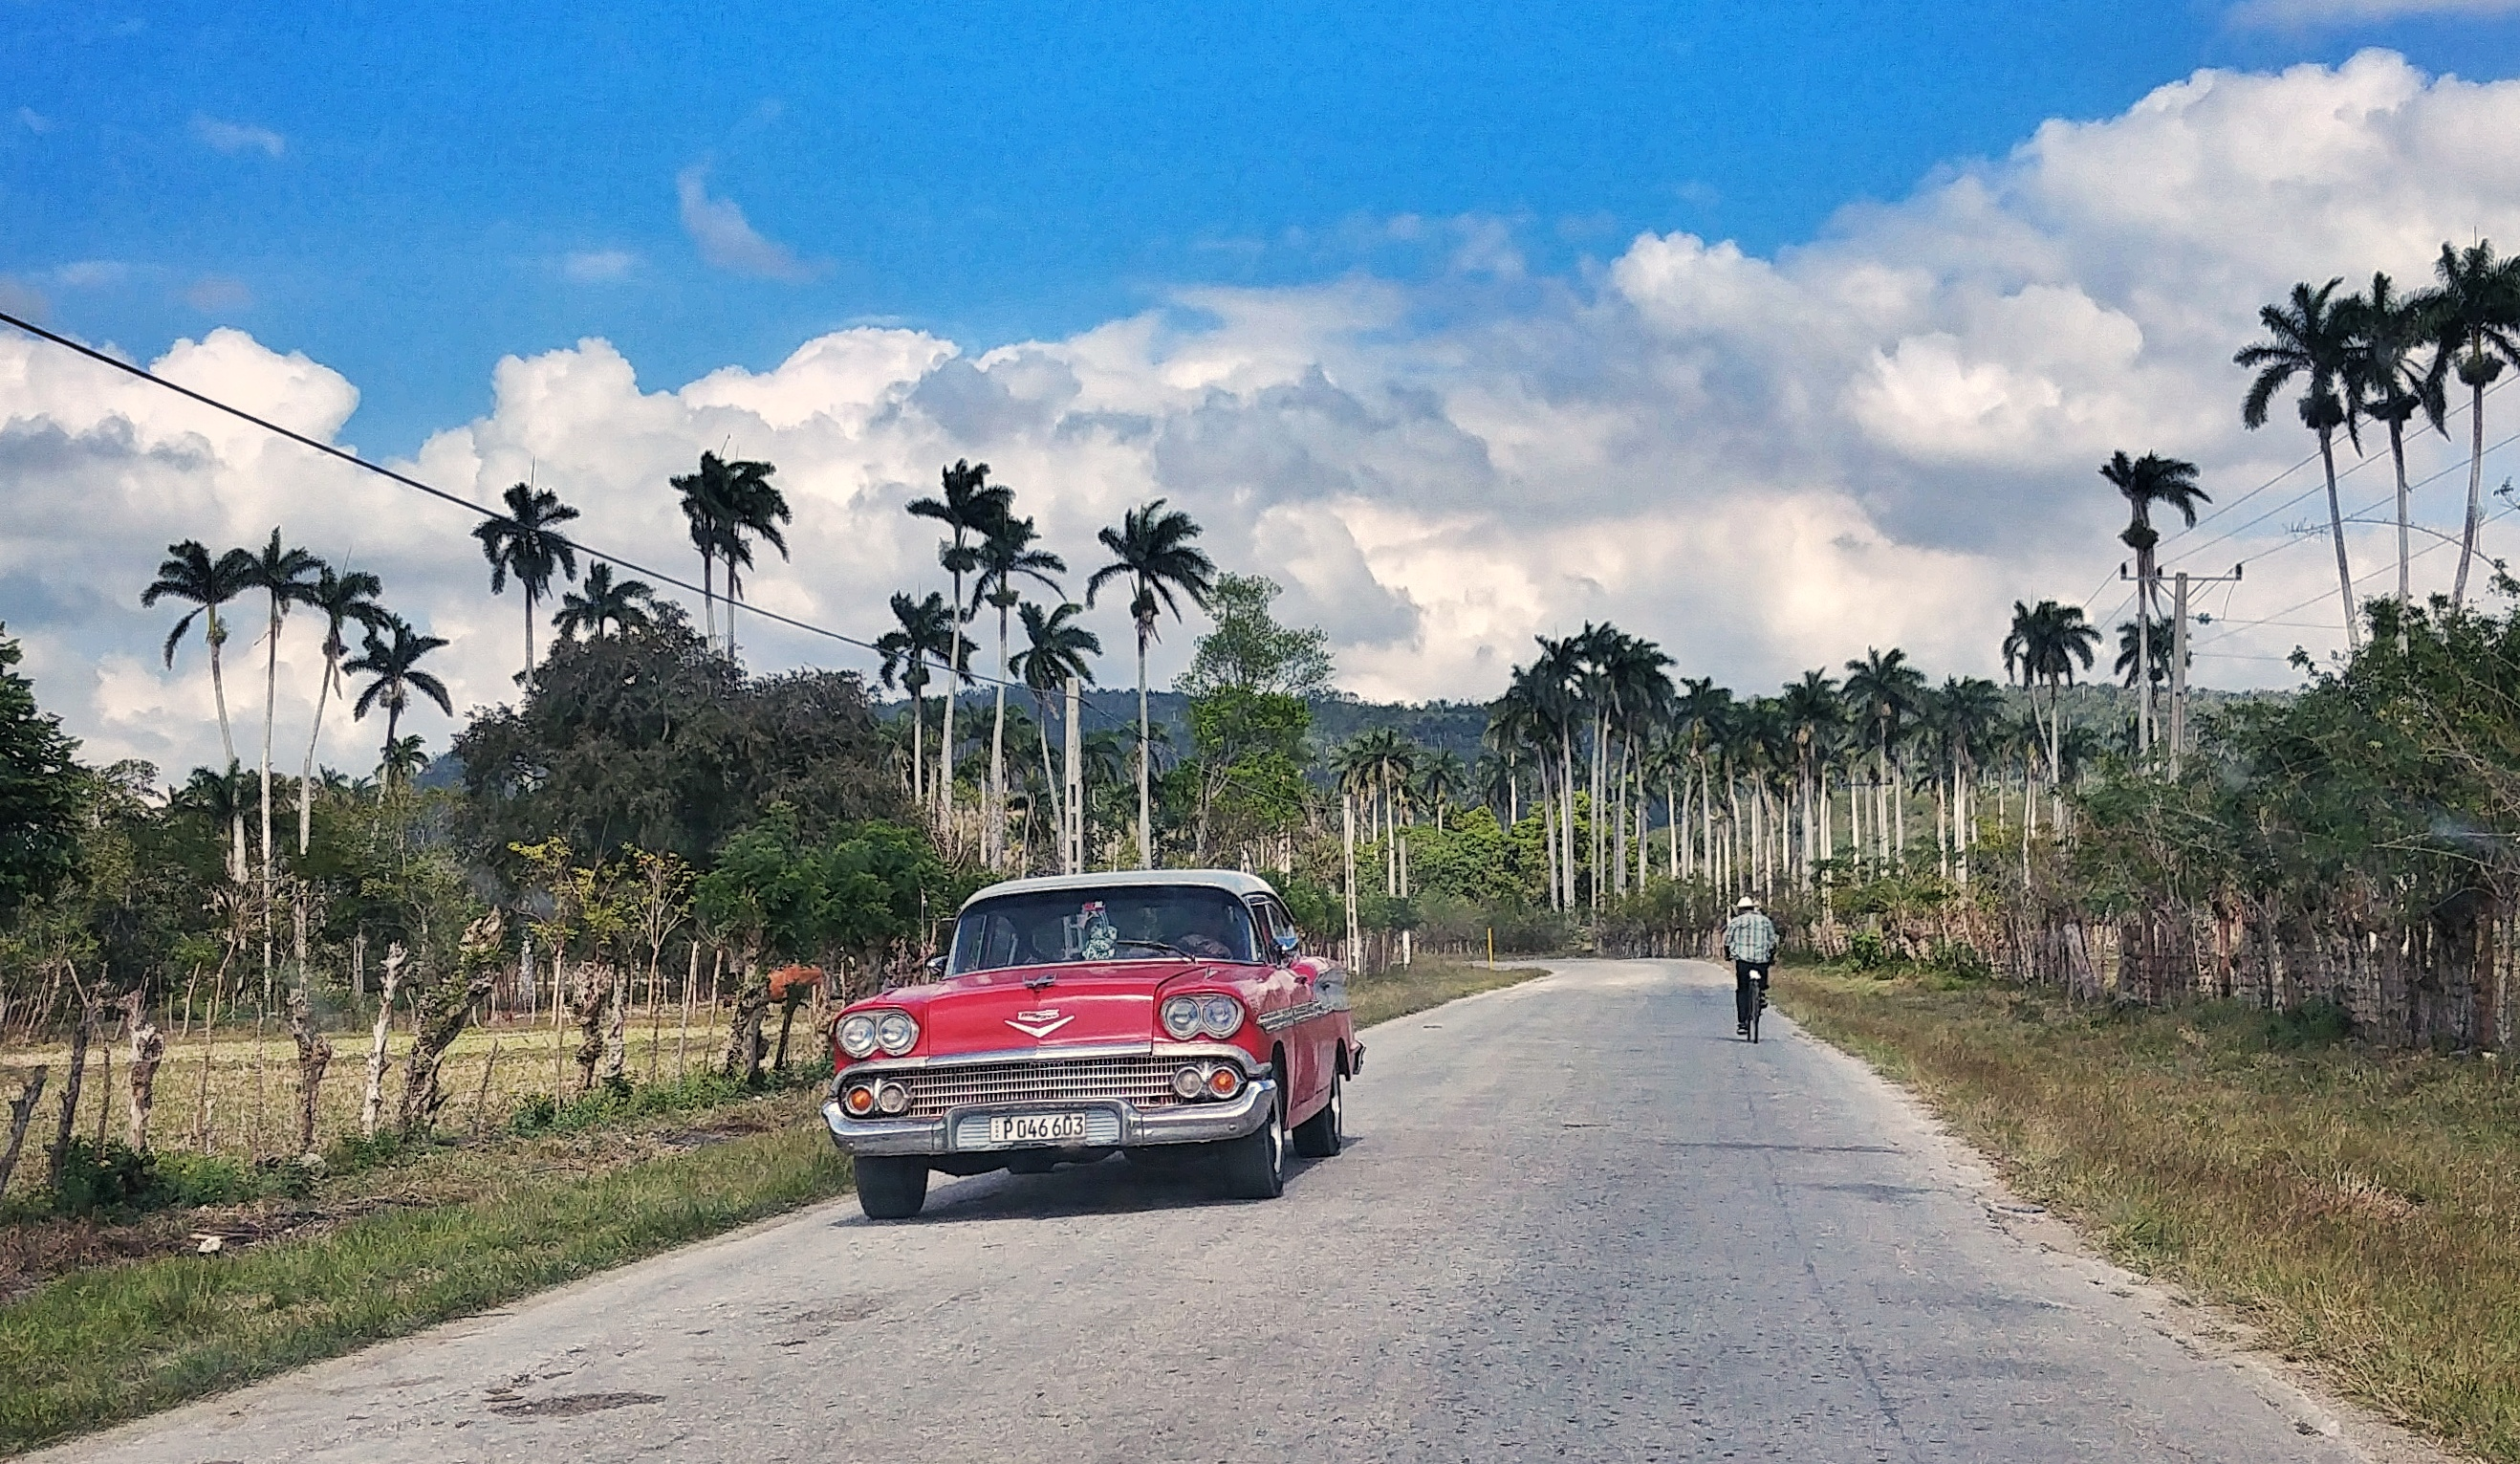 Road in Cuba with a vintage red car